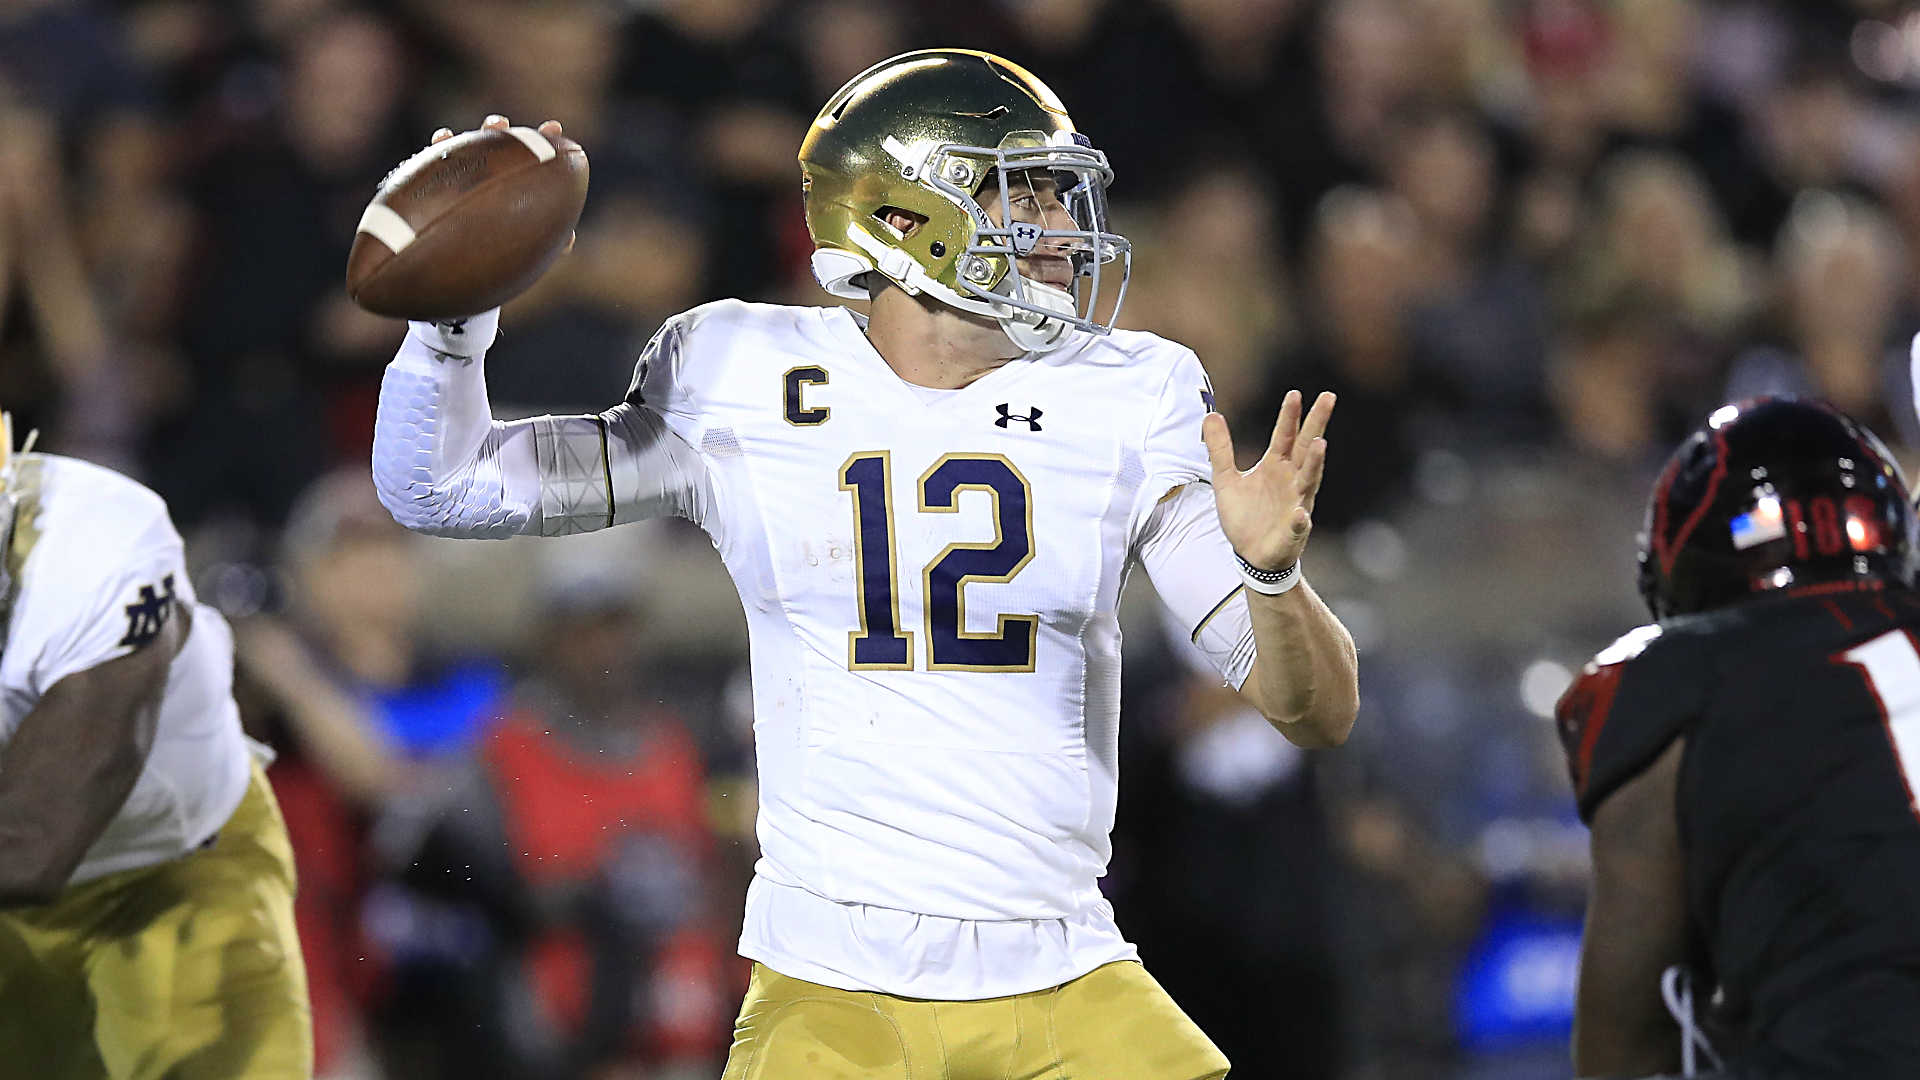 College football Week 6 picks against the spread for every